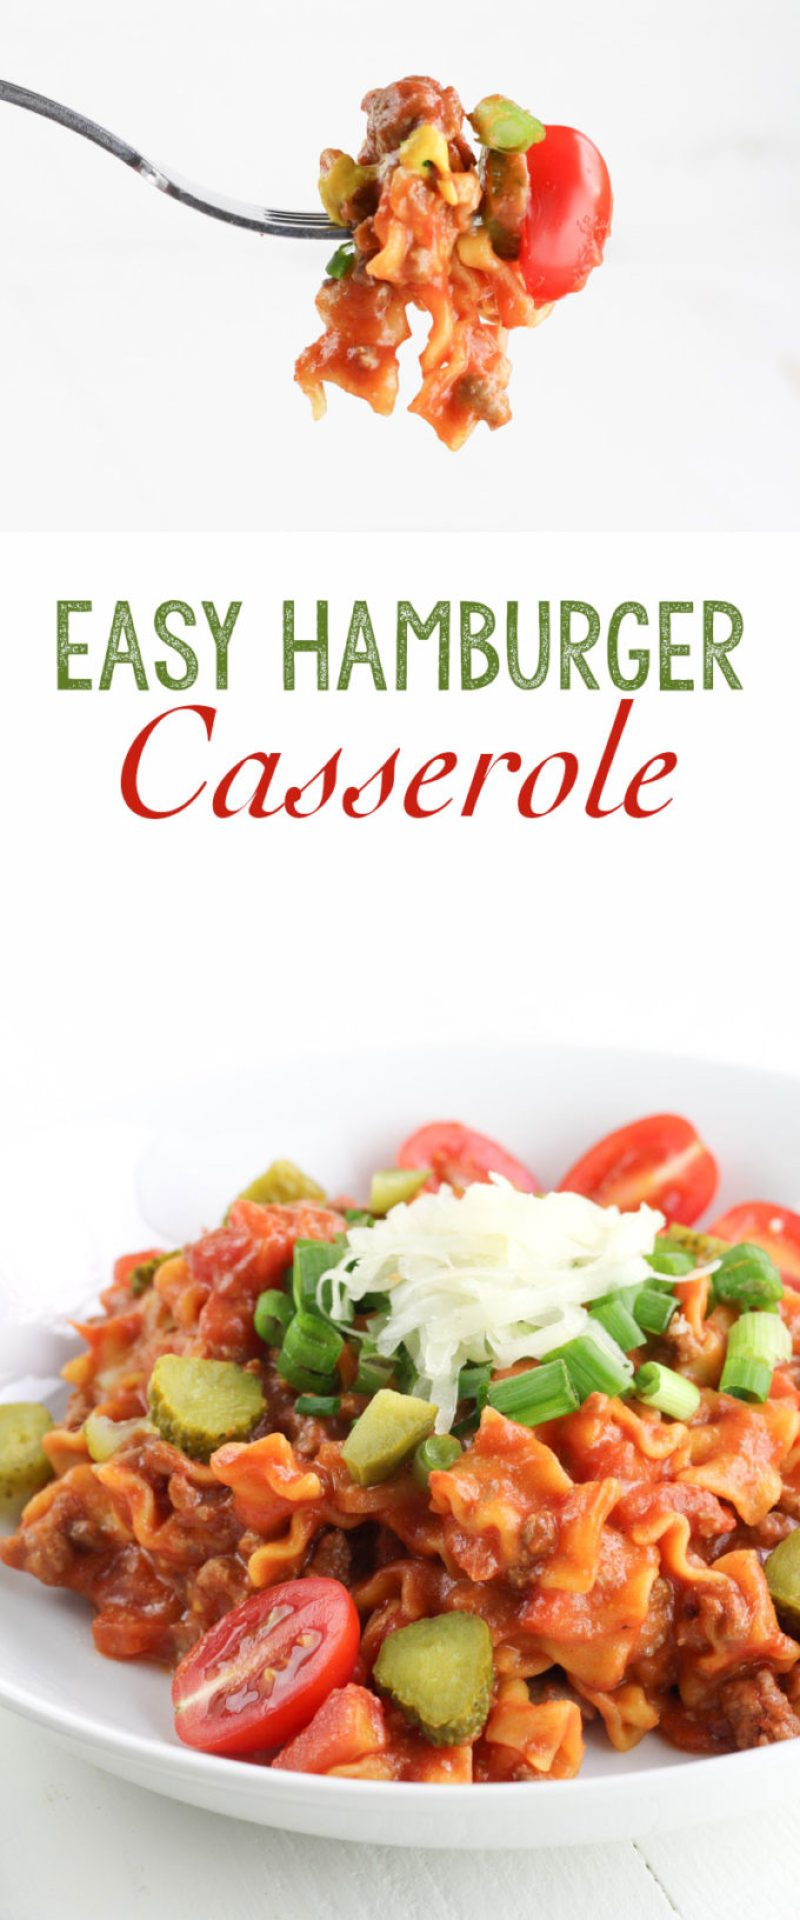 Easy Hamburger Casserole: This hamburger casserole is the go-to meal of the week. Chances are you've got all these ingredients already! In under 30 minutes you'll have your favorite hamburger in casserole form.